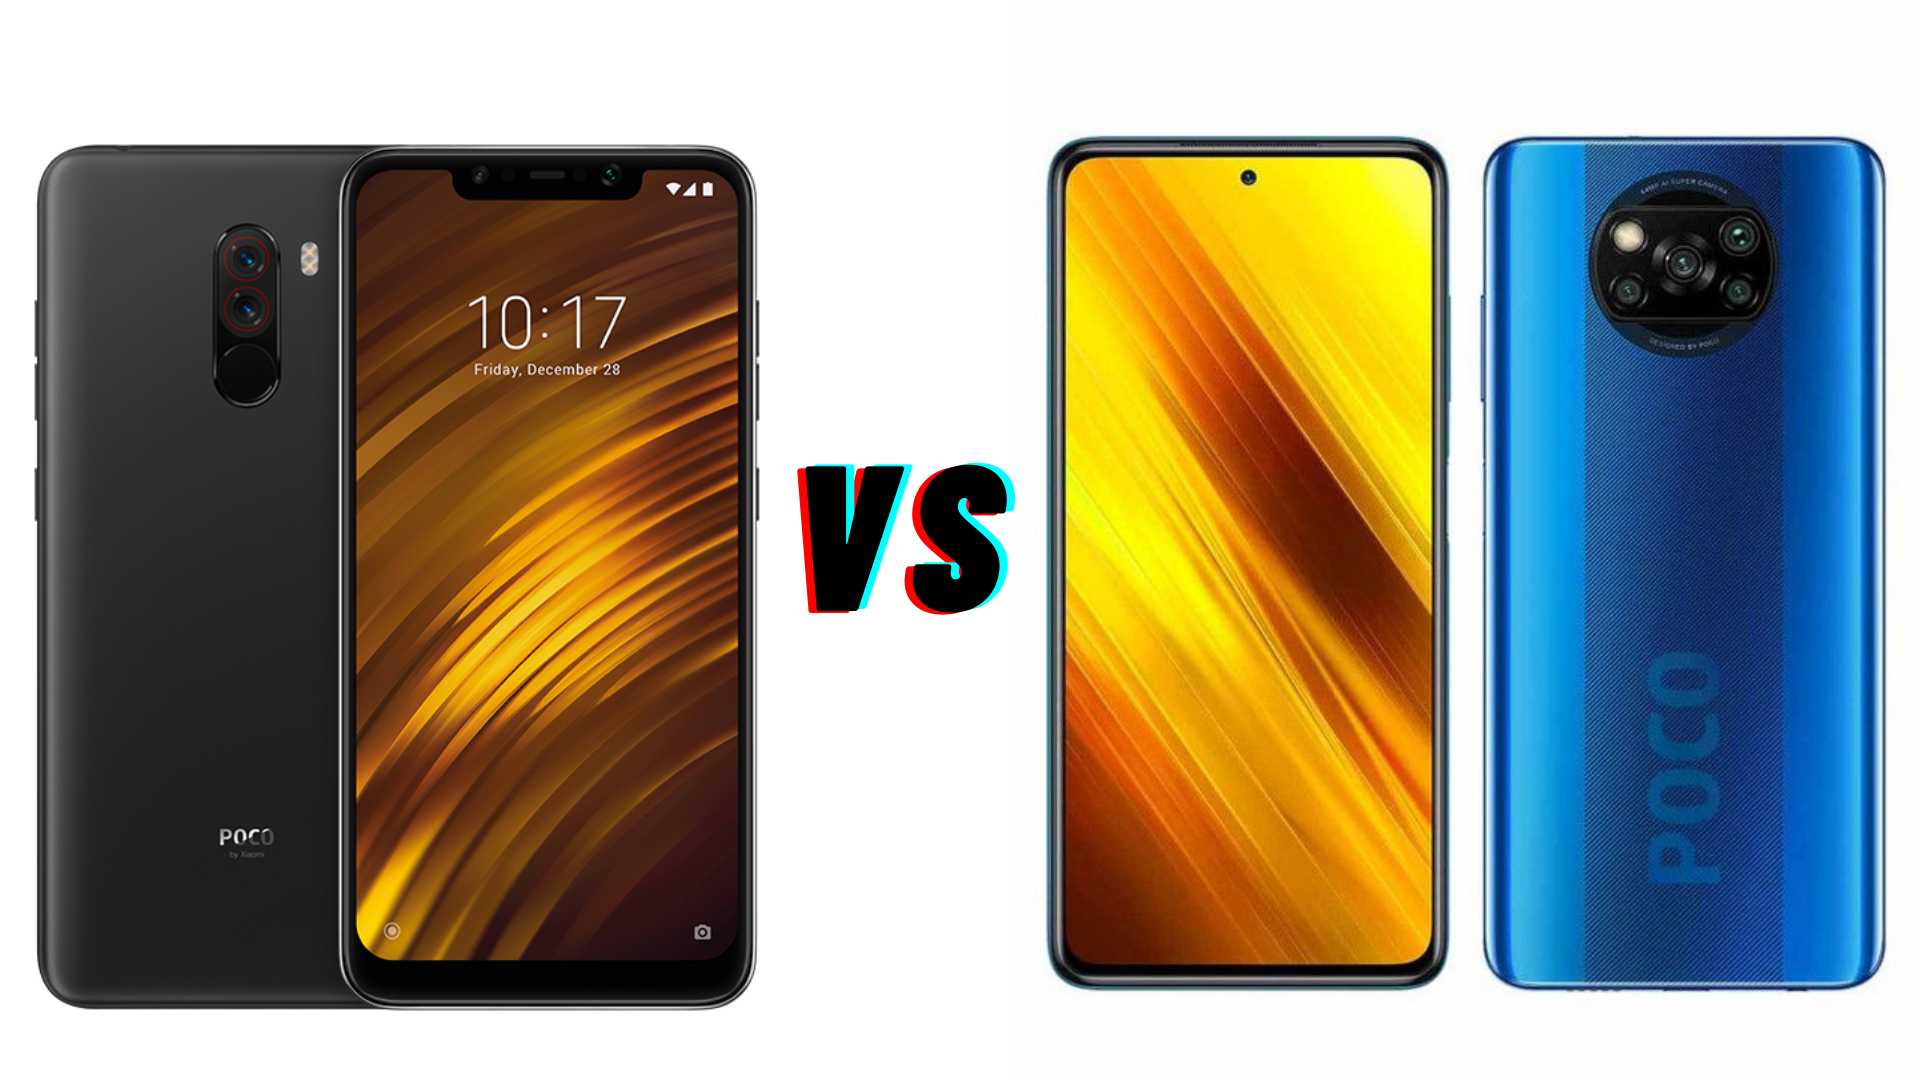 Poco F1 VS Poco X3 Pro – Here Is What You Should Know